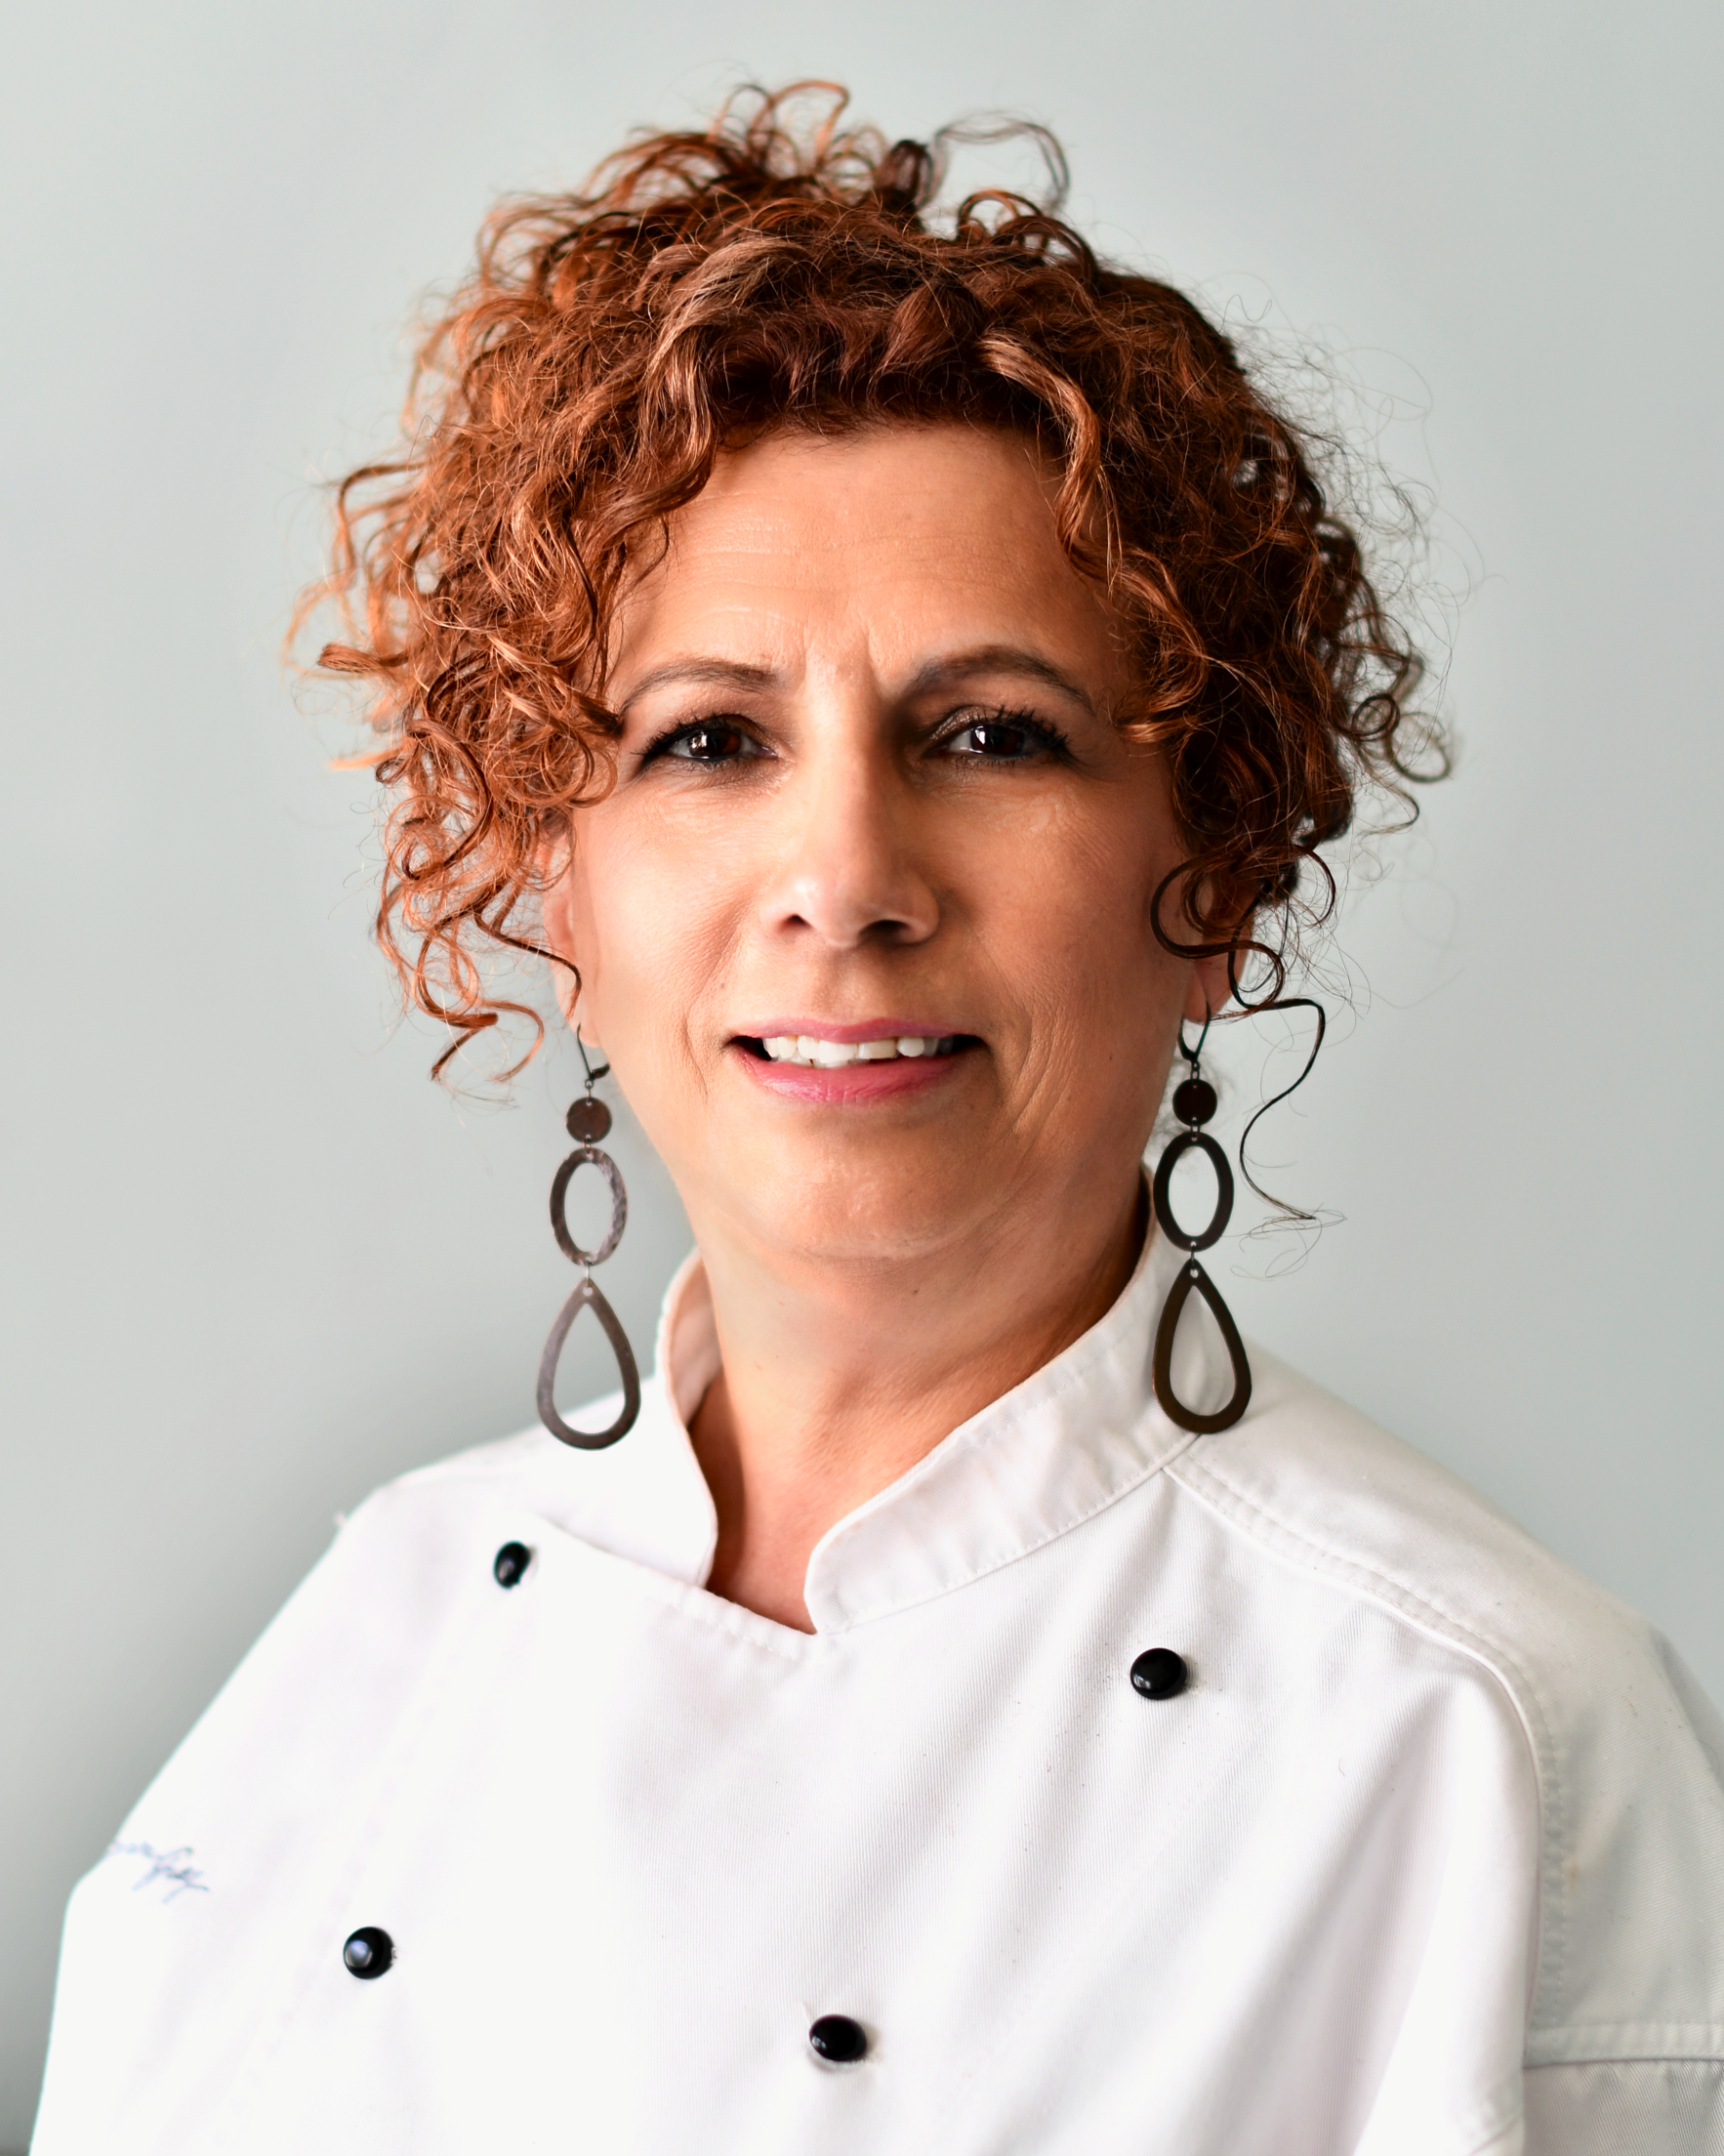 Chef Head Shot